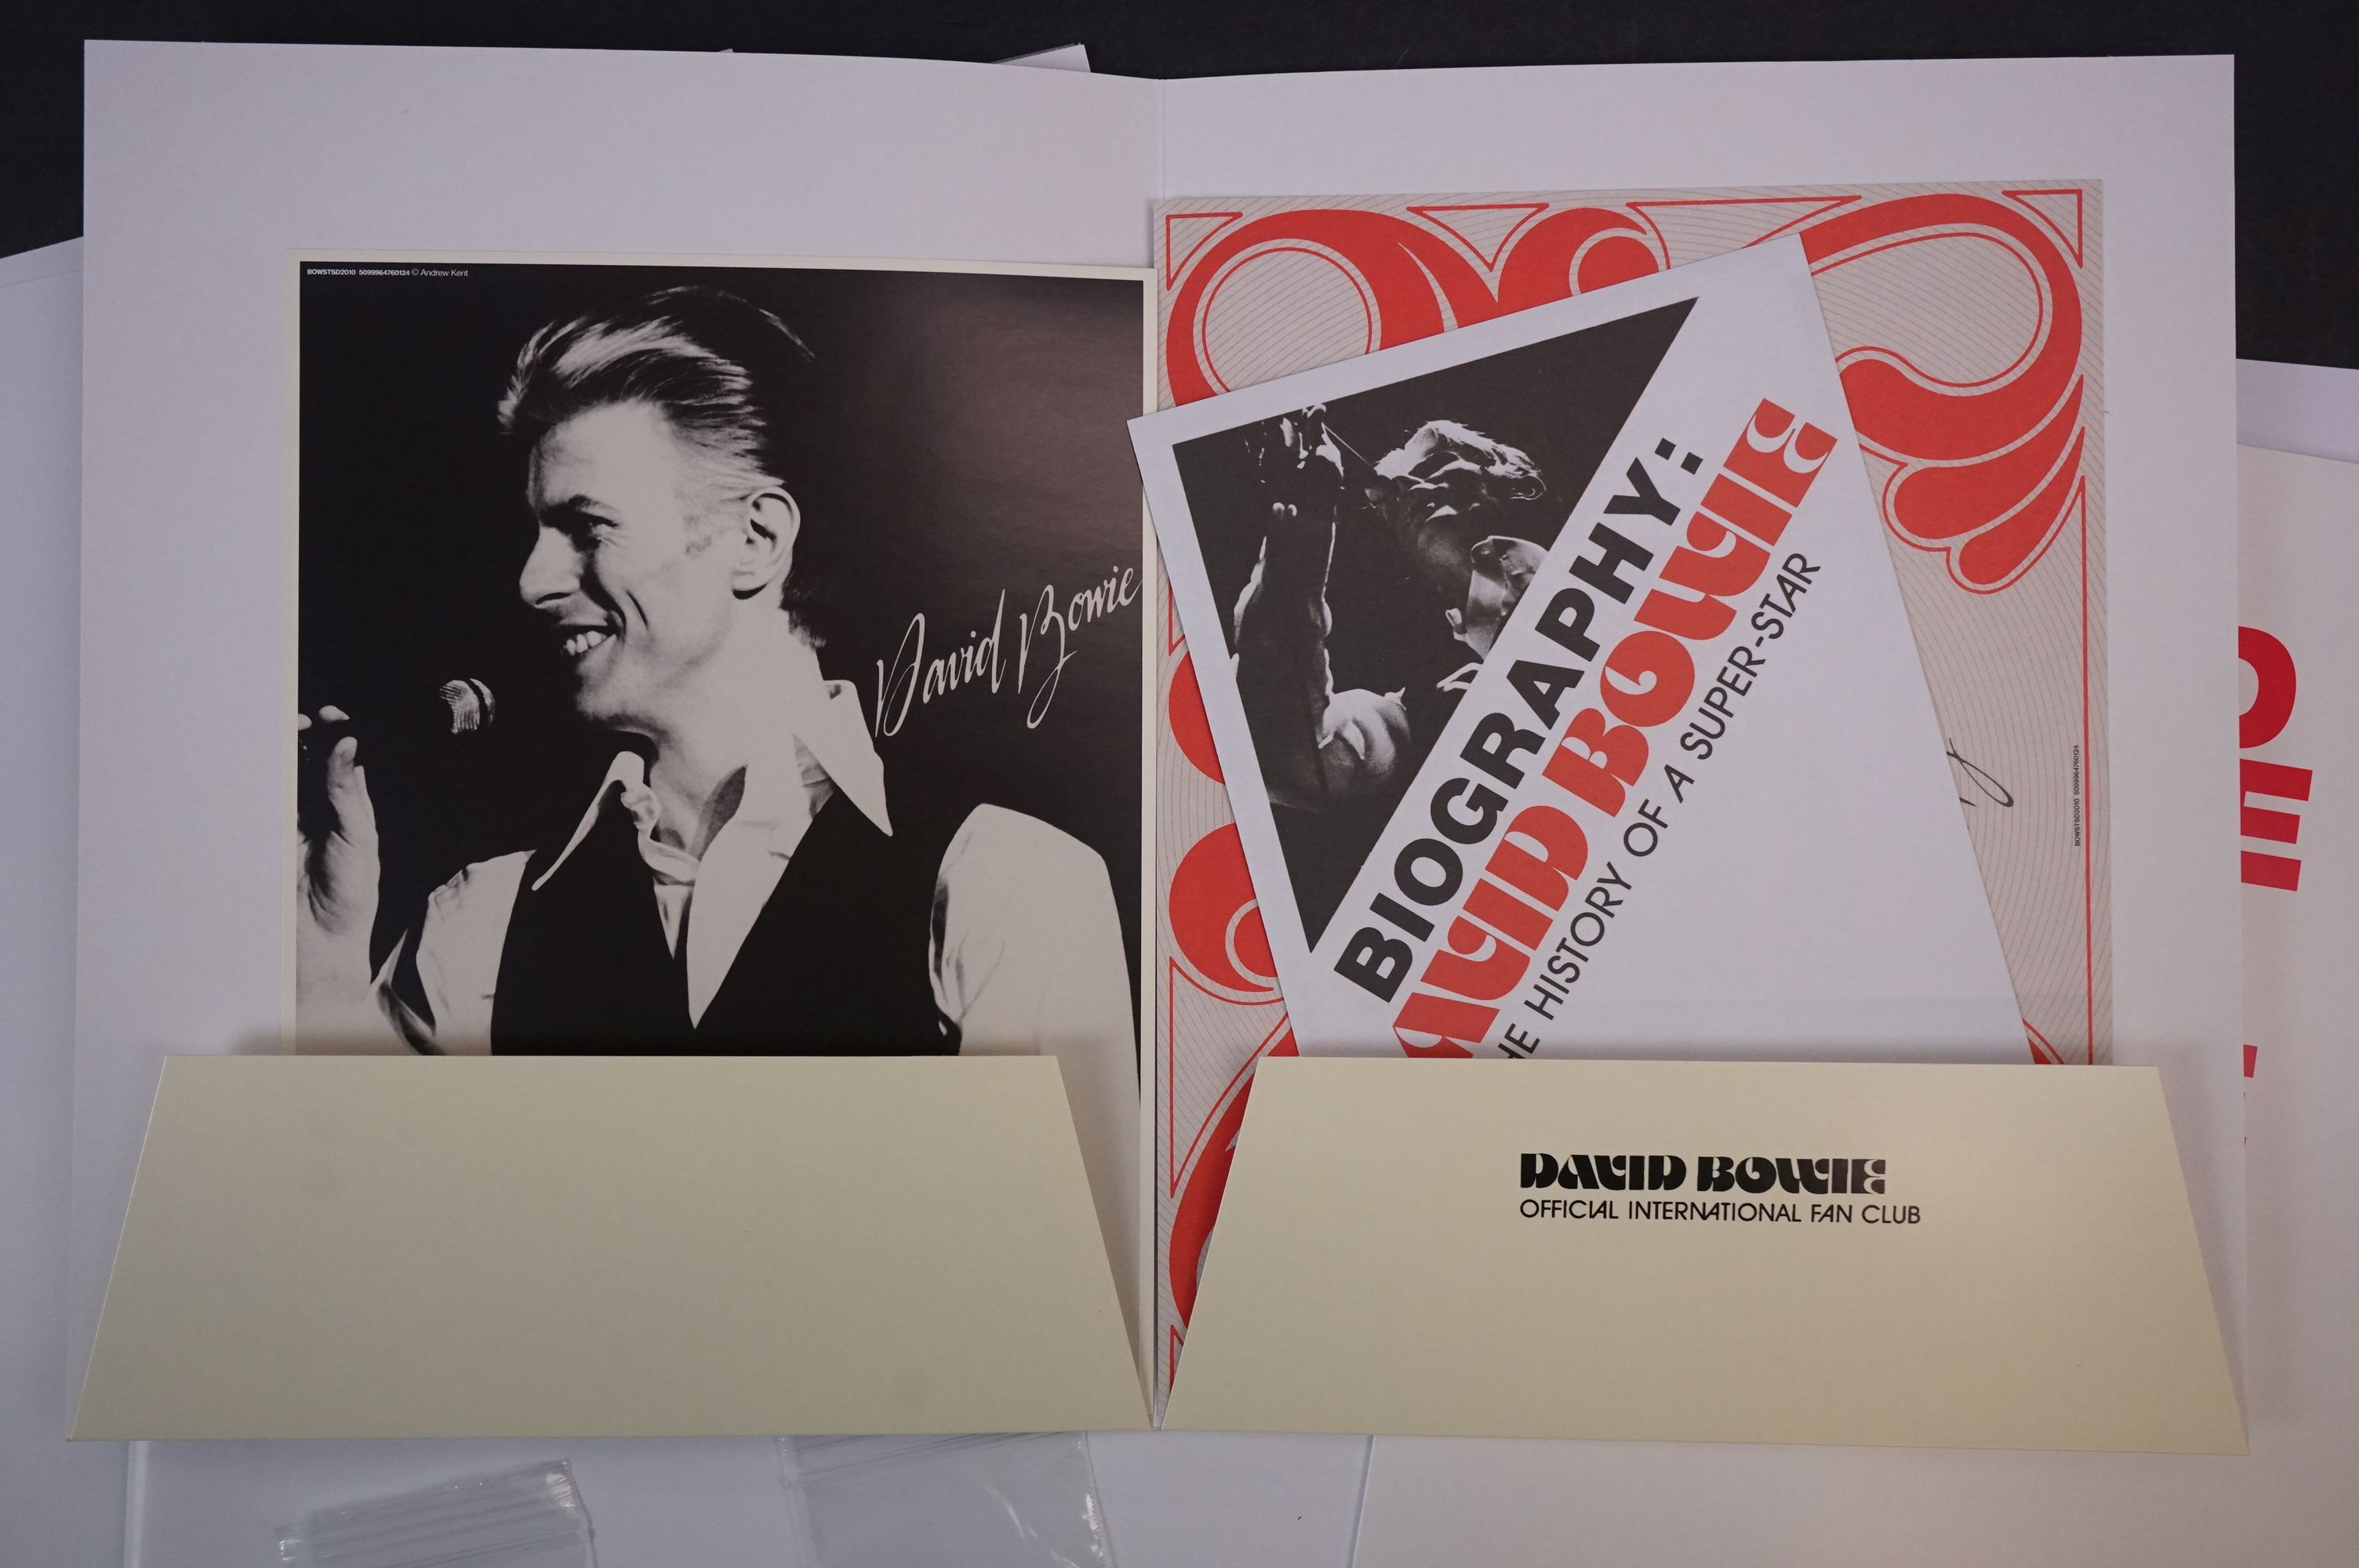 Vinyl / CD / DVD - David Bowie Station To Station Deluxe Box Set, vg - Image 12 of 15